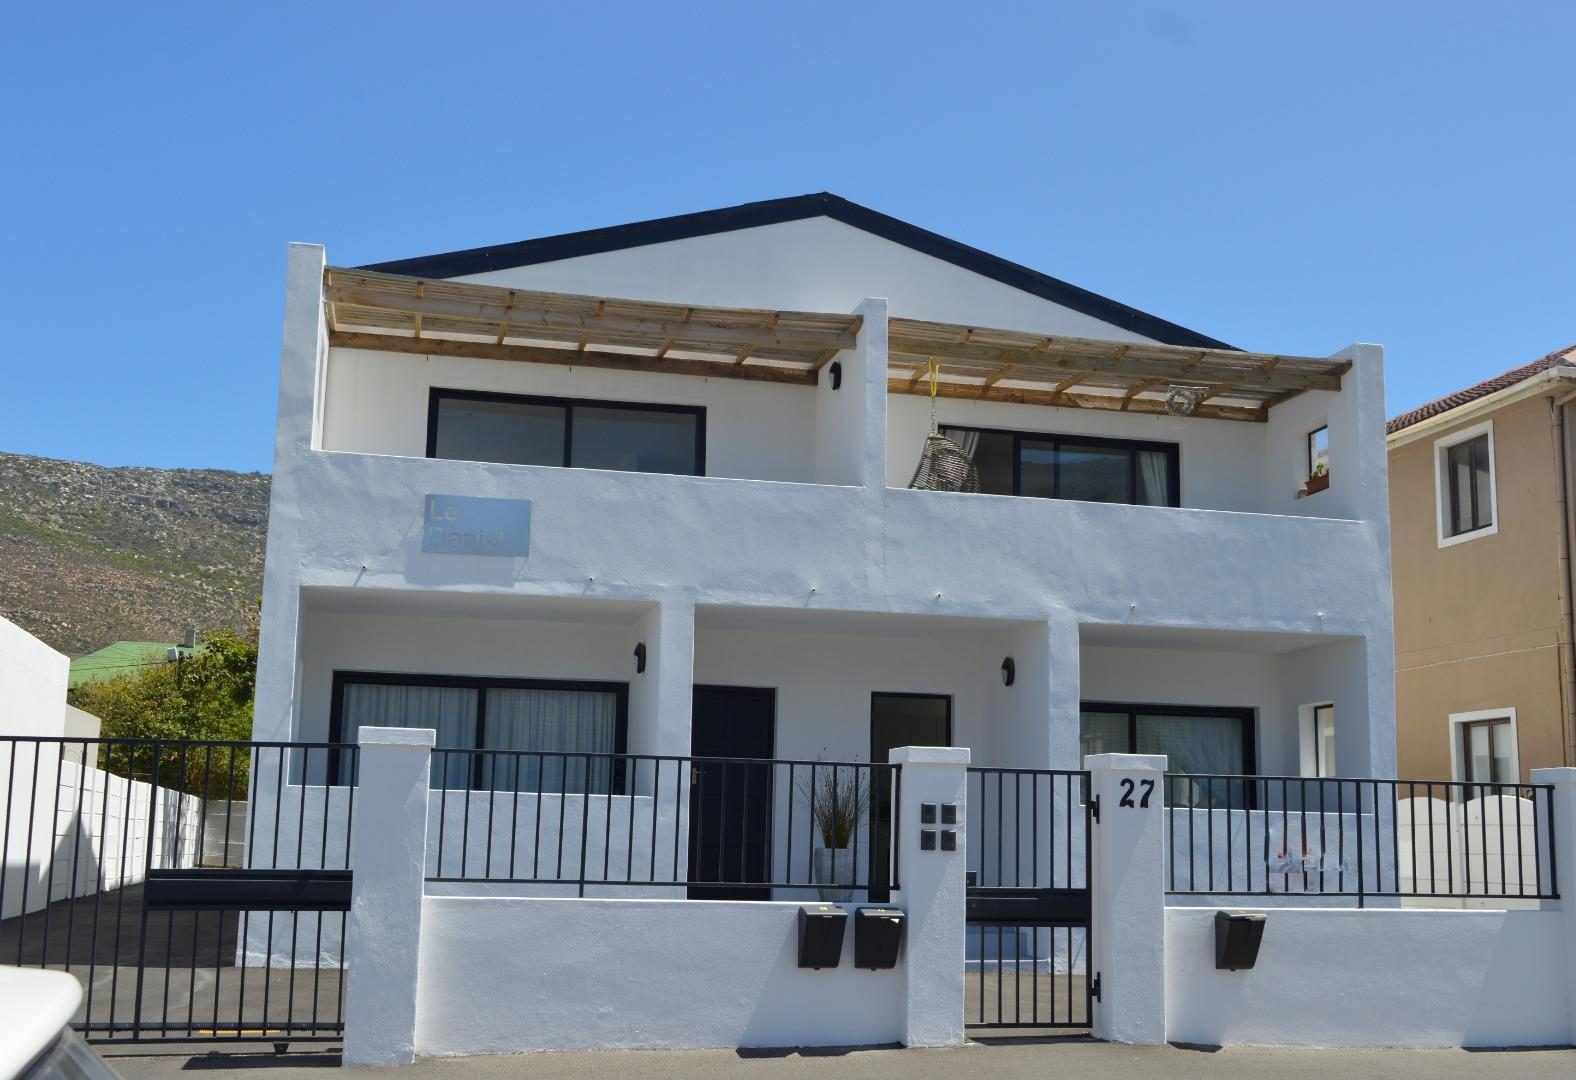 2 Bedroom  Apartment for Sale in Fish Hoek - Western Cape